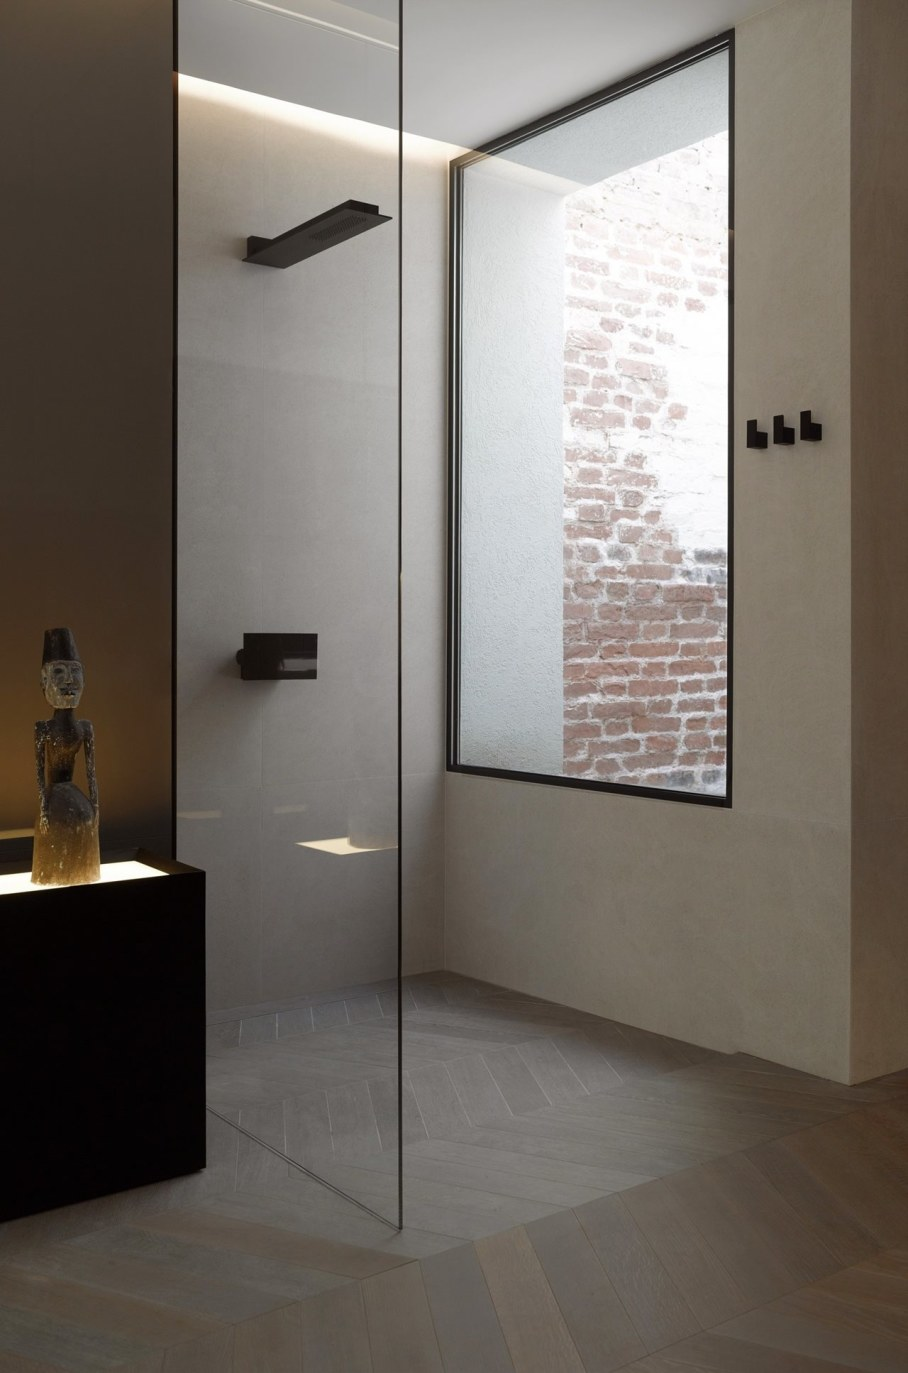 Loft VIENNA Wasagasse from Bernd Gruber studio - Bathroom